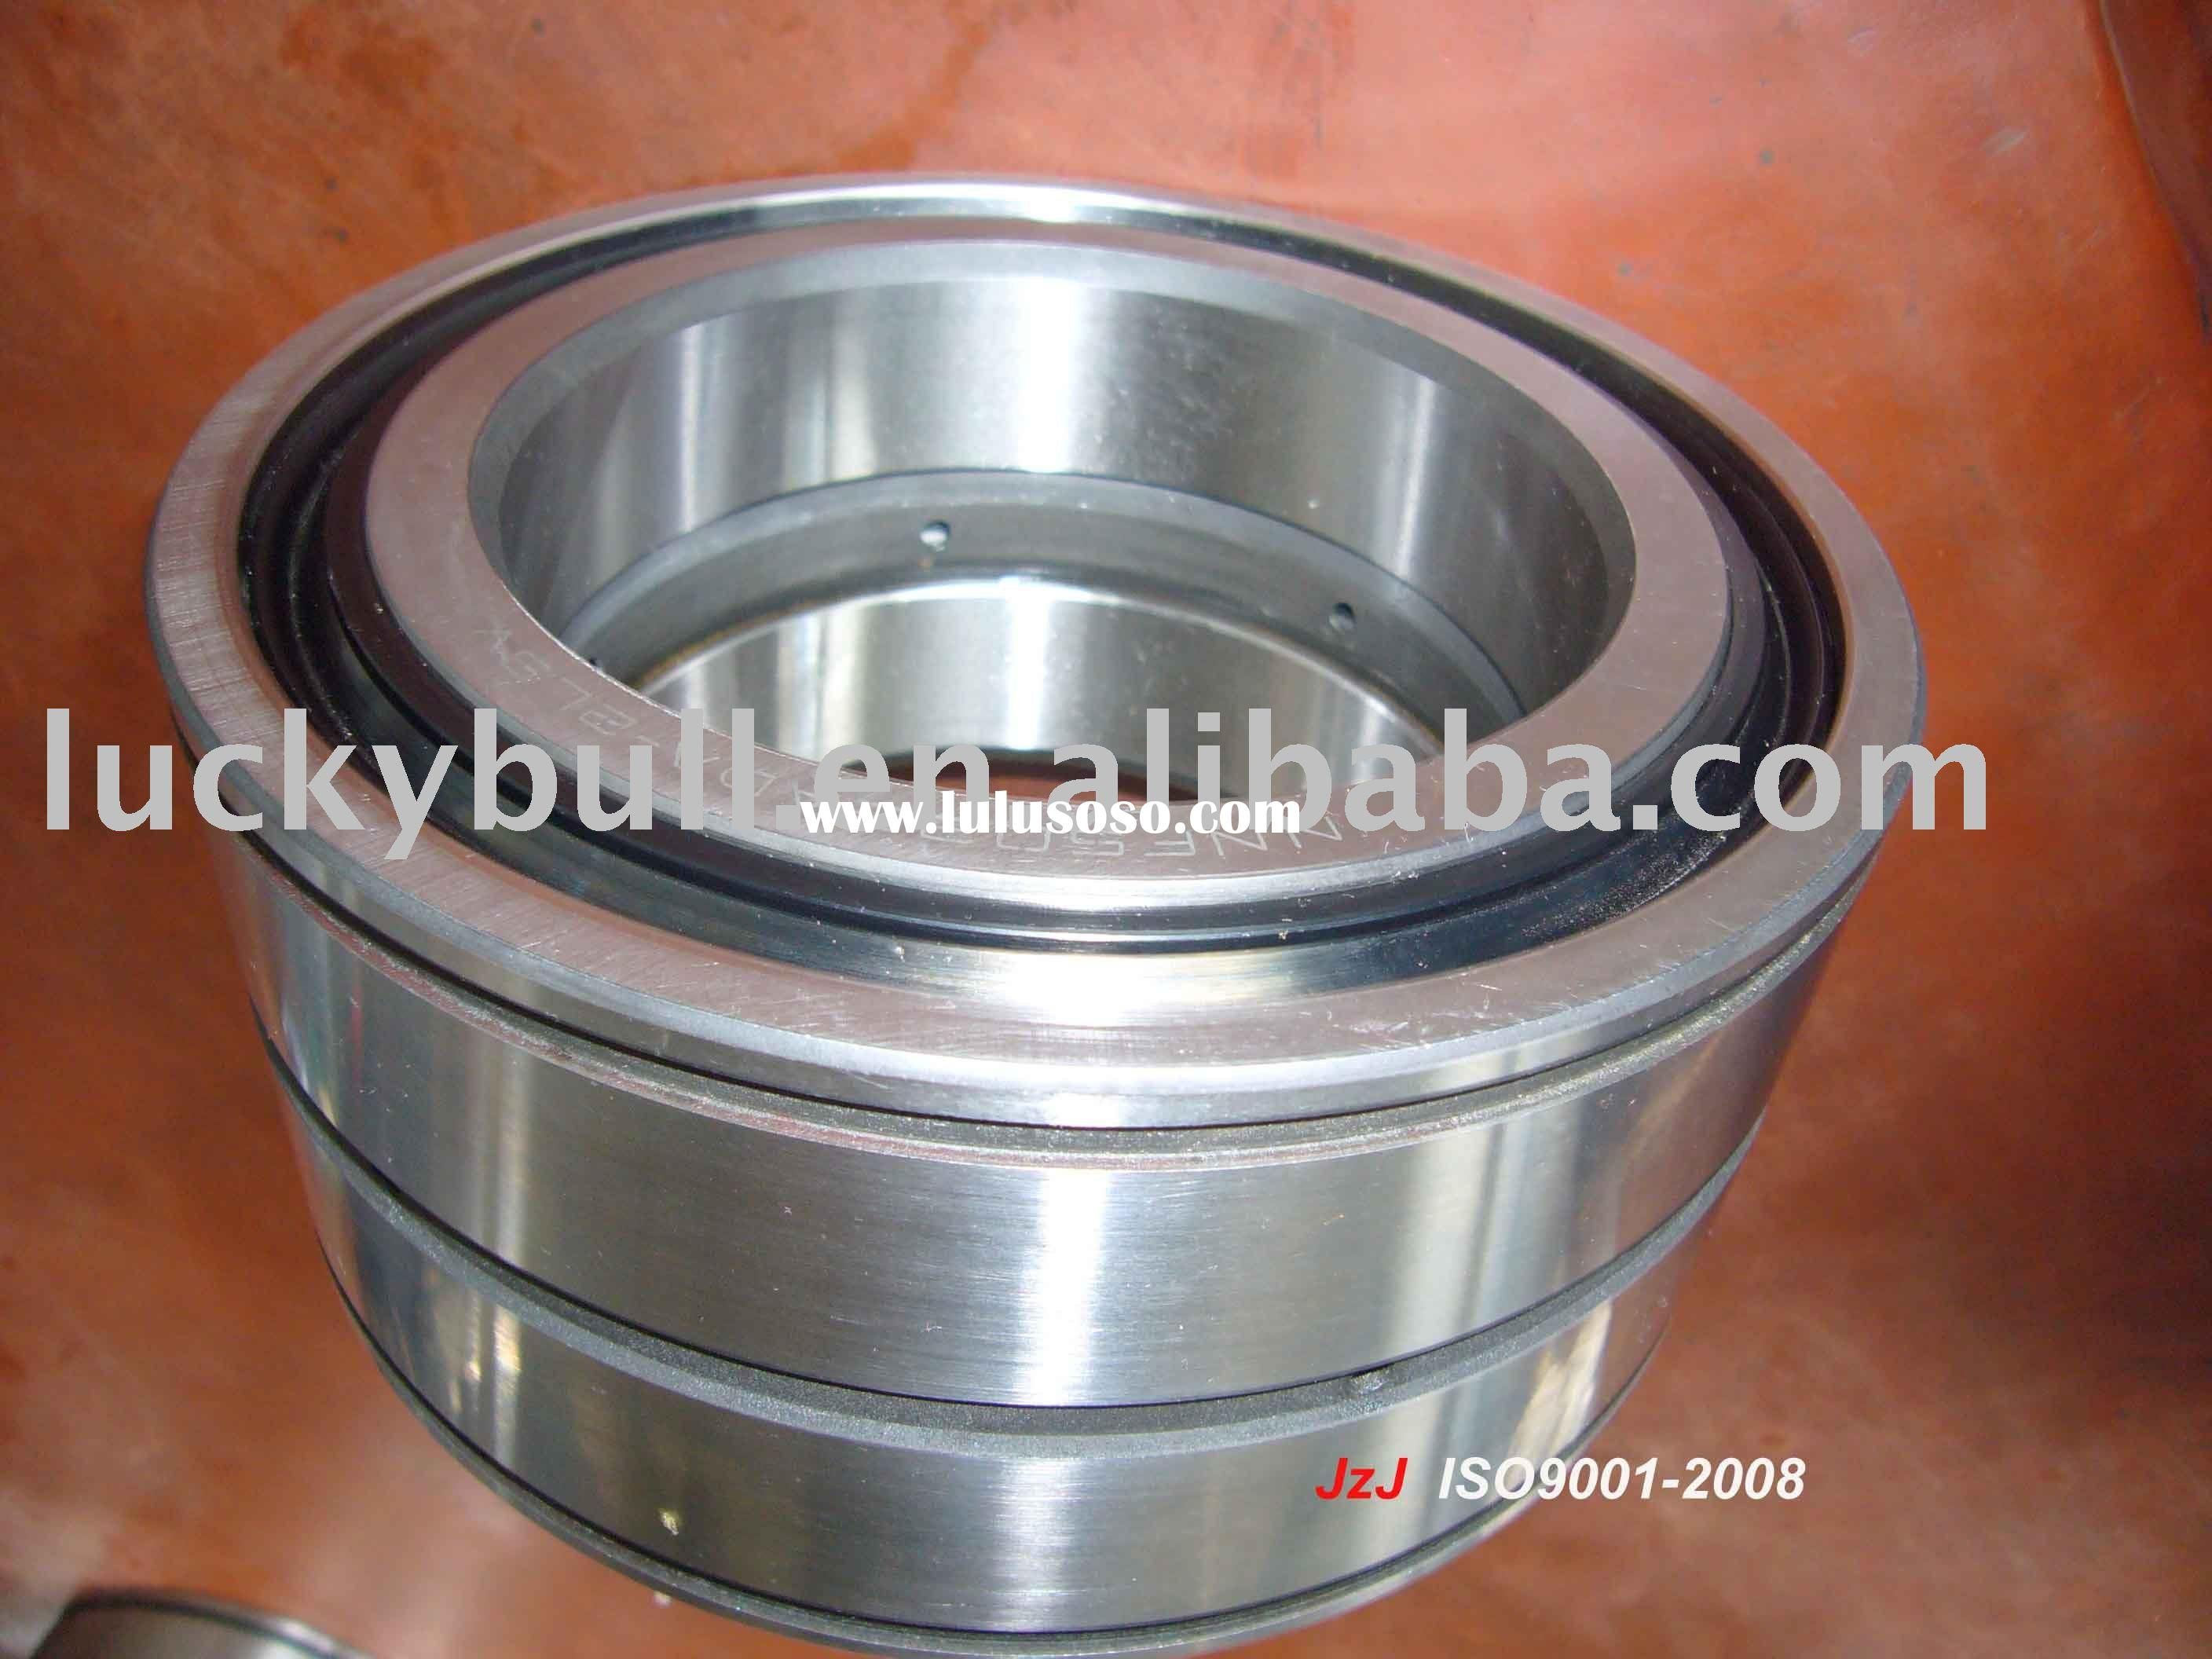 SL04 5036-PP, double-row full complement cylindrical roller bearing